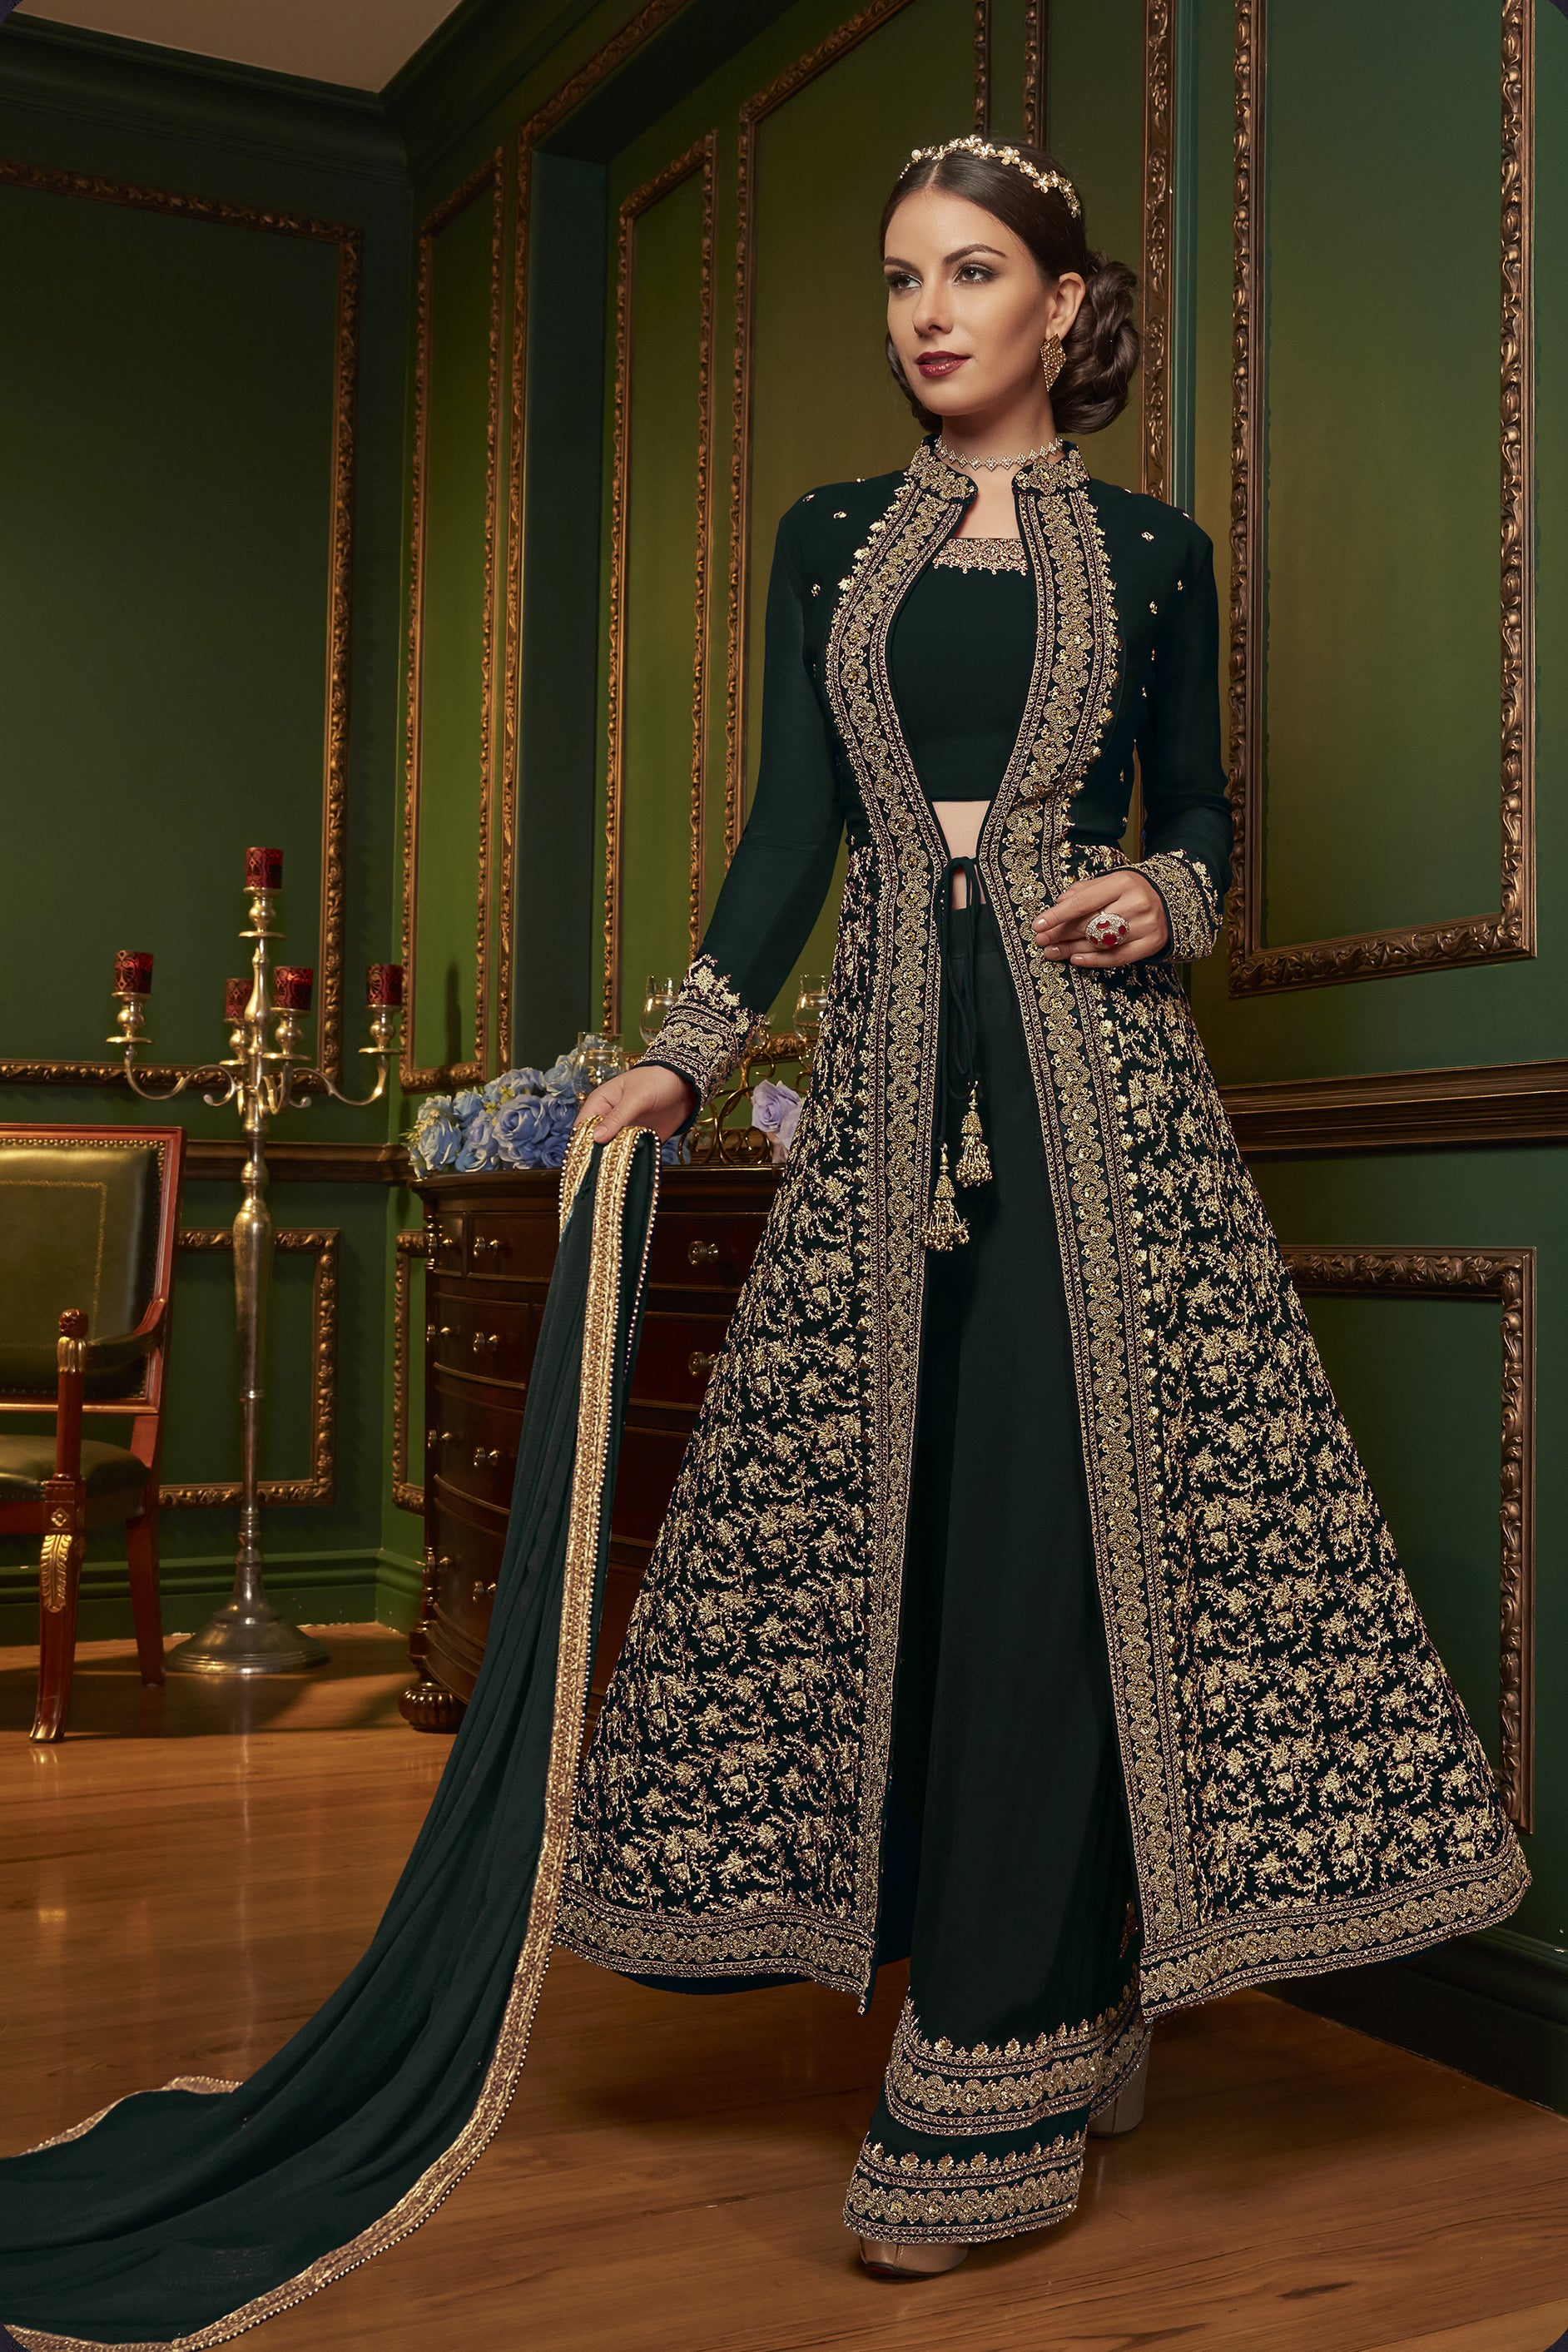 ad2d58ddf8a Green Embroidered Jacket Style Salwar Kameez Material Online India